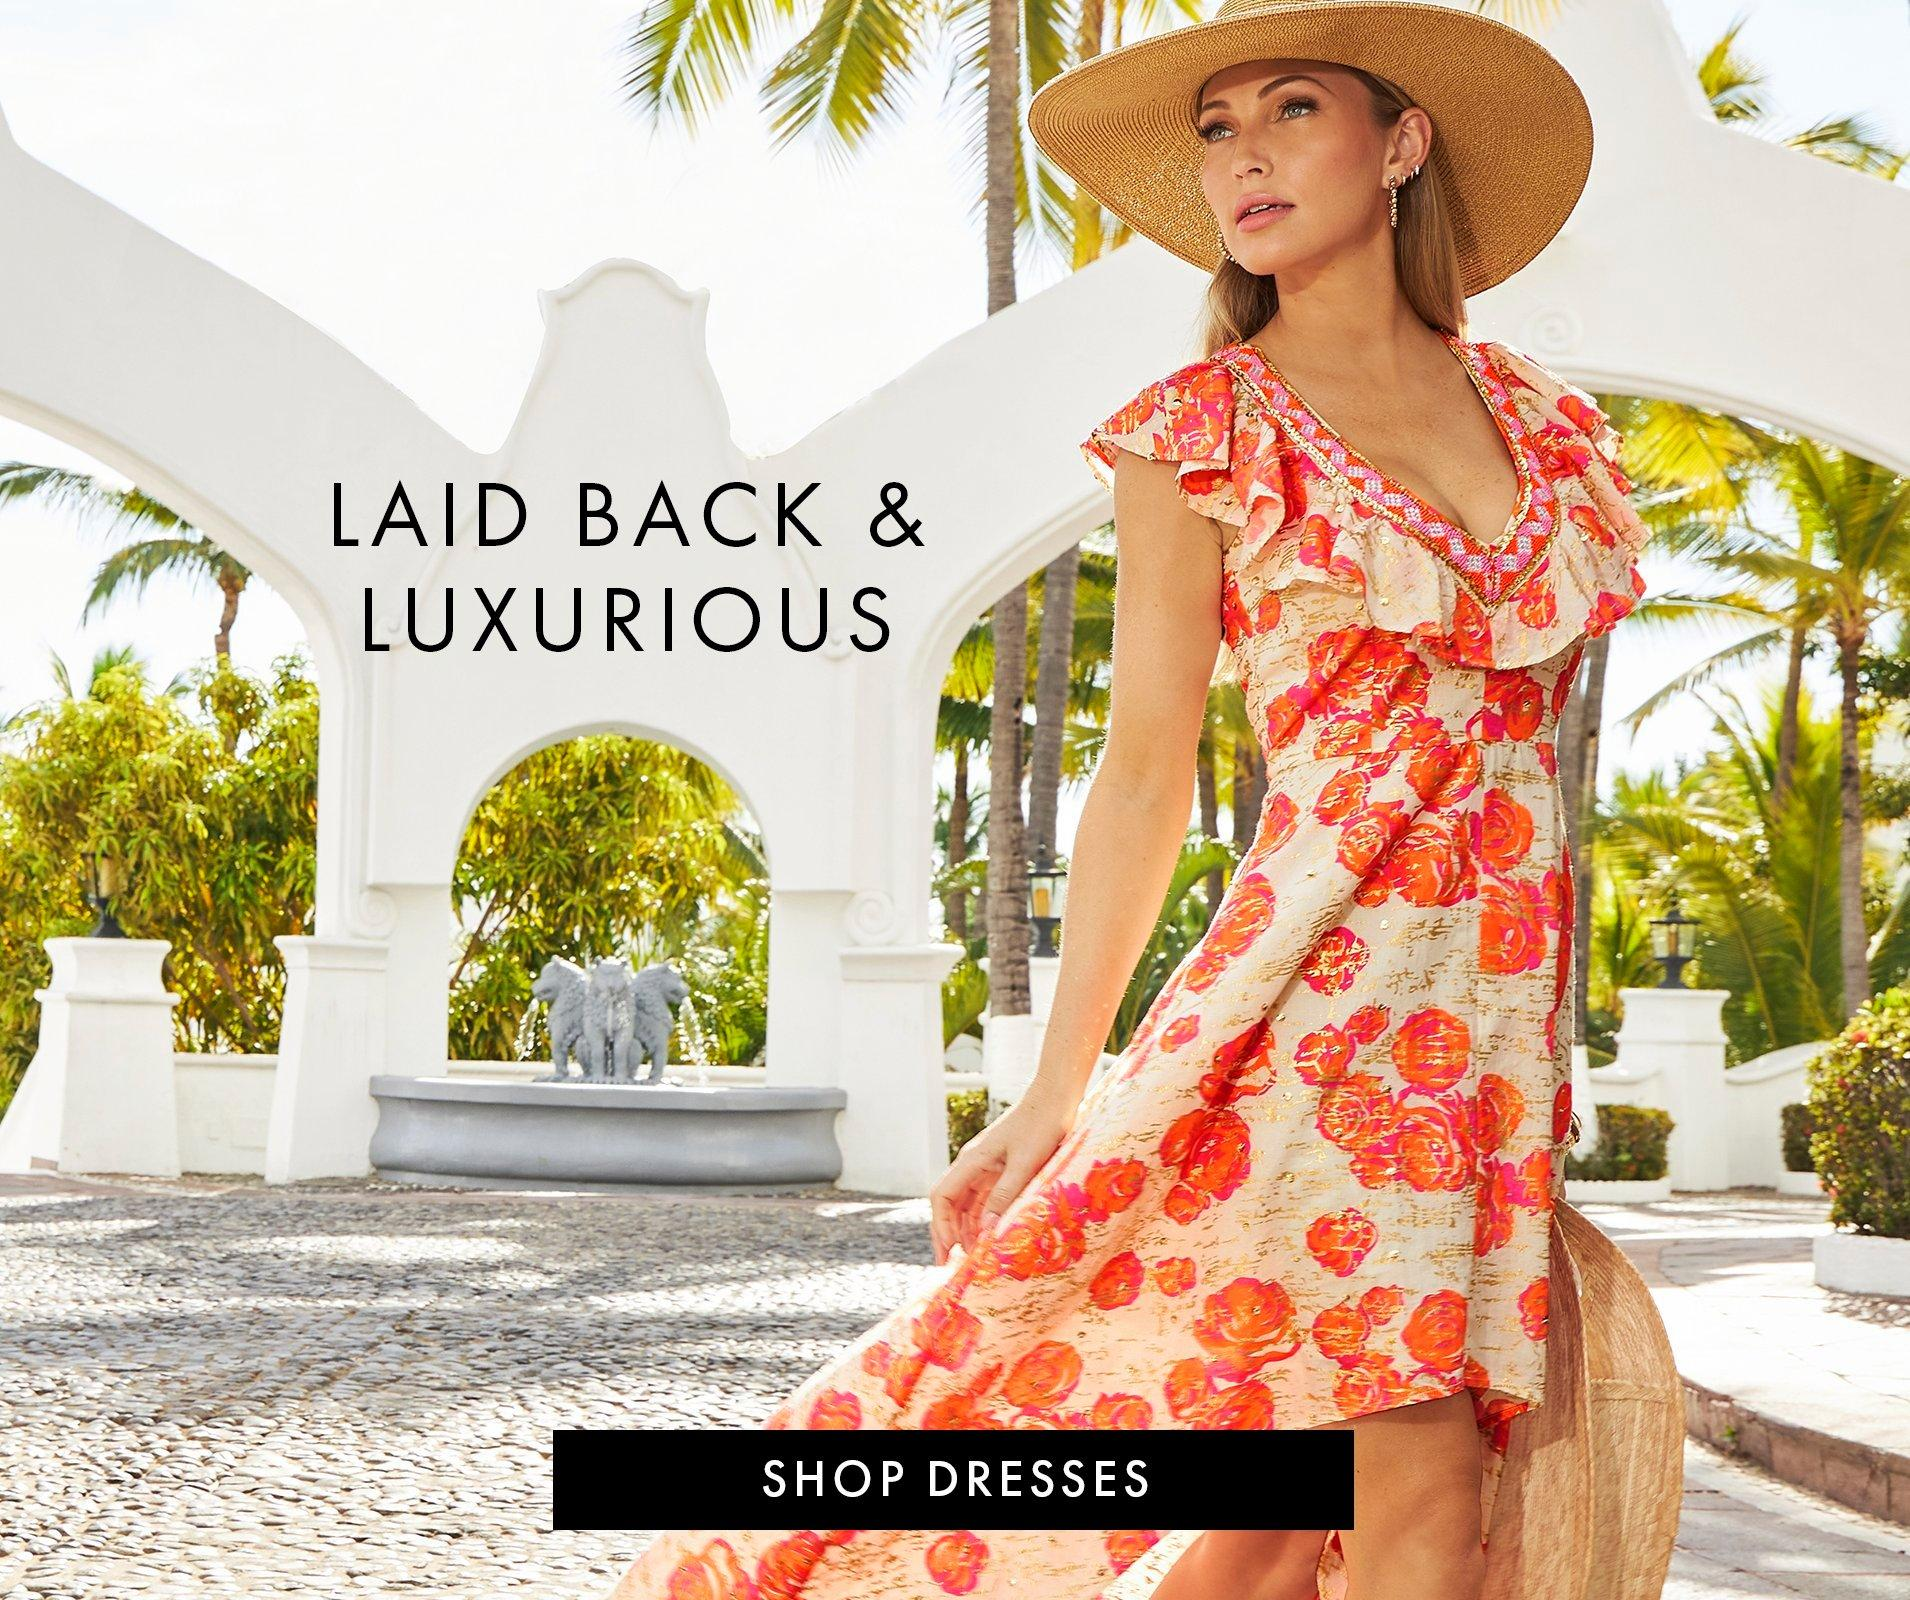 model wearing a white, orange, and red floral embroidered high-low maxi dress and straw hat.